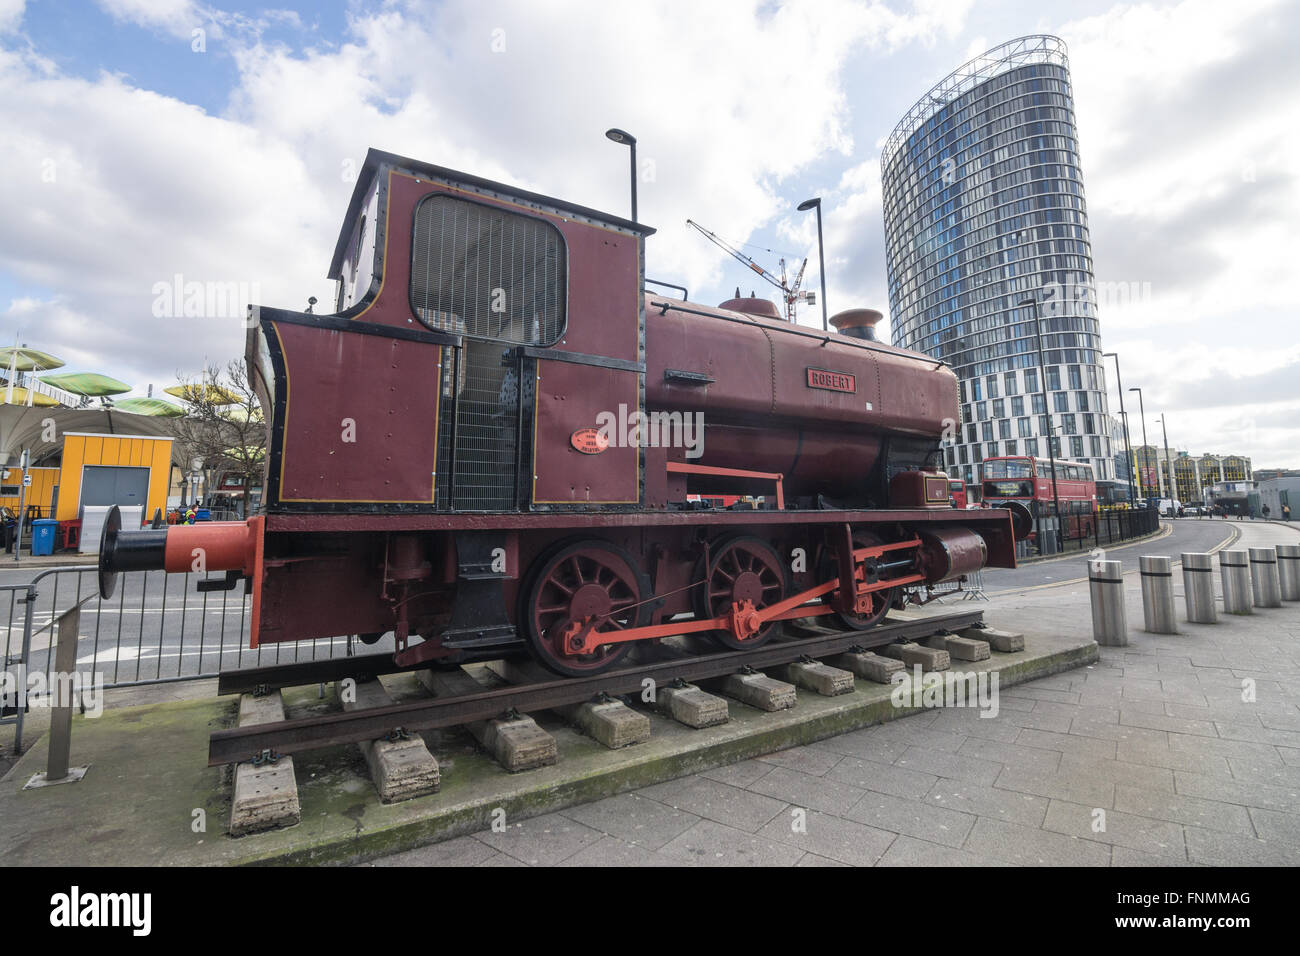 shunting locomotive ROBERT outside the entrance to Stratford Station. - Stock Image